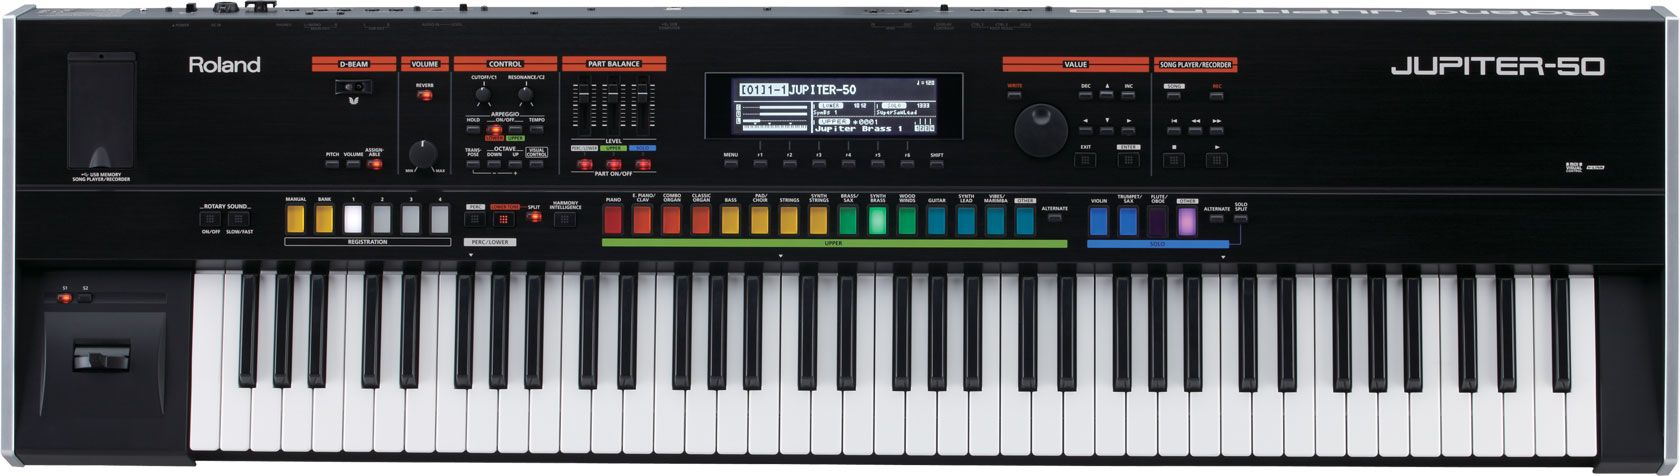 Been a while since I bought a Roland keyboard    maybe time